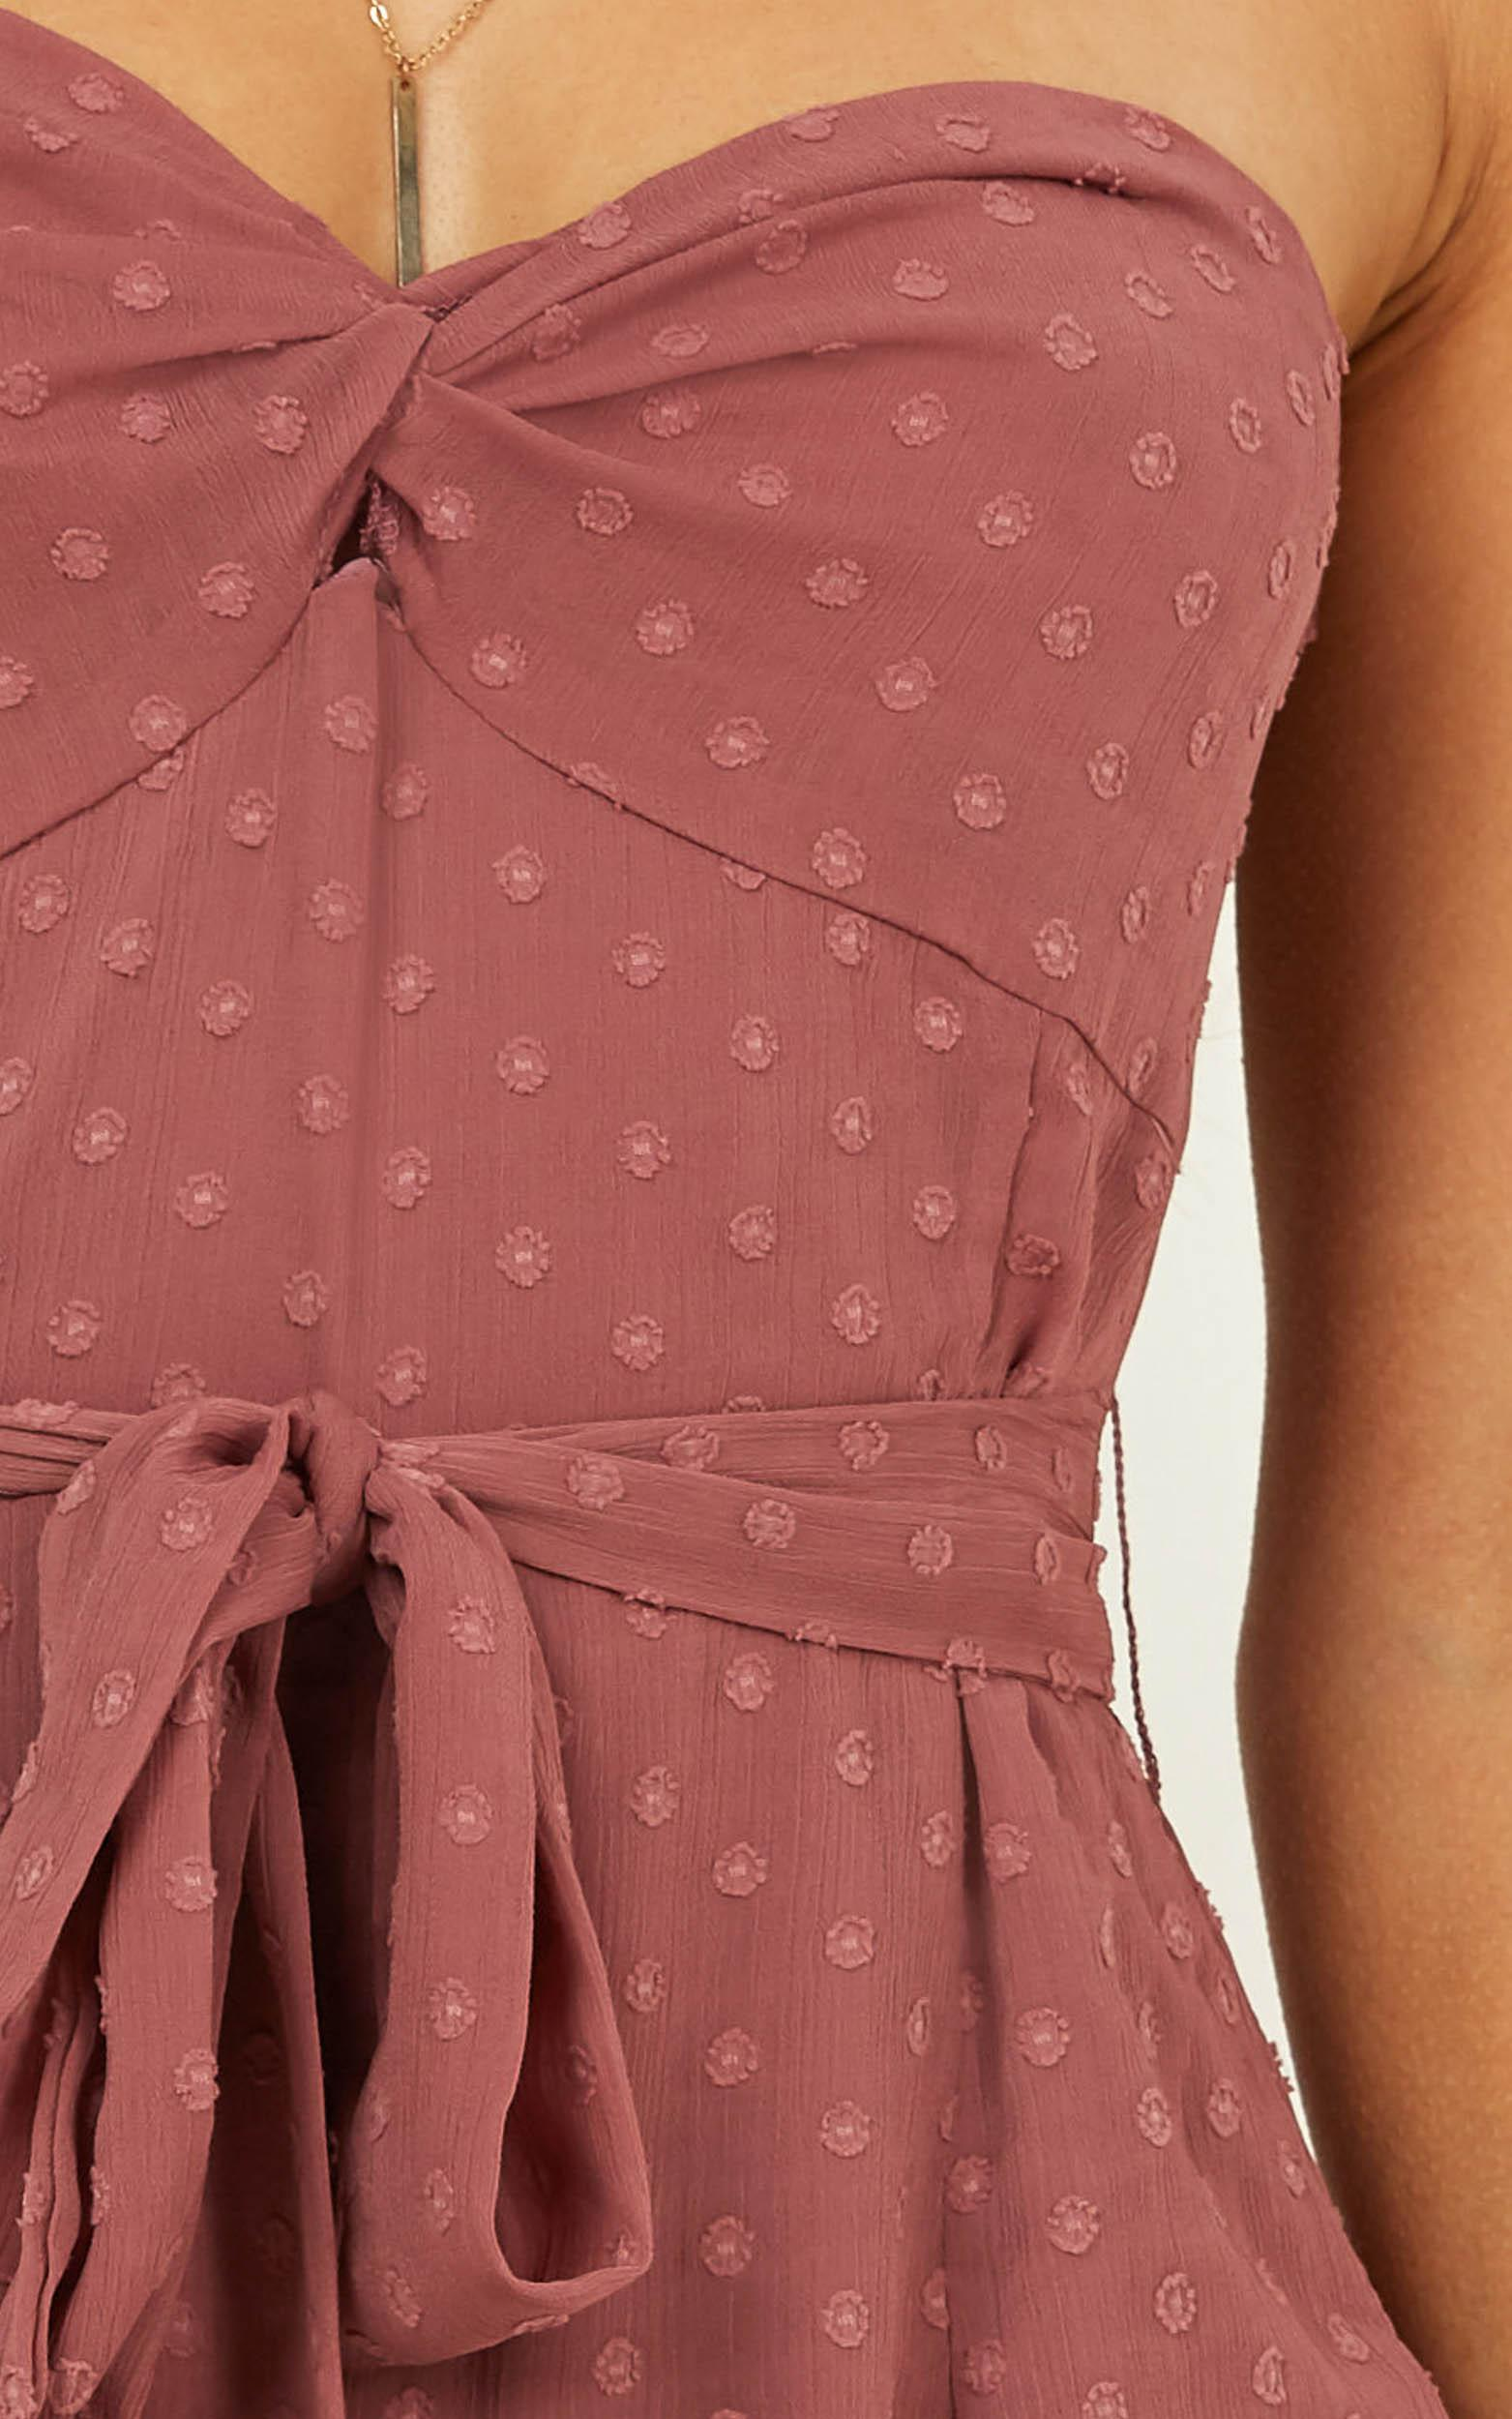 Belong With Me Playsuit In dusty rose - 20 (XXXXL), Pink, hi-res image number null